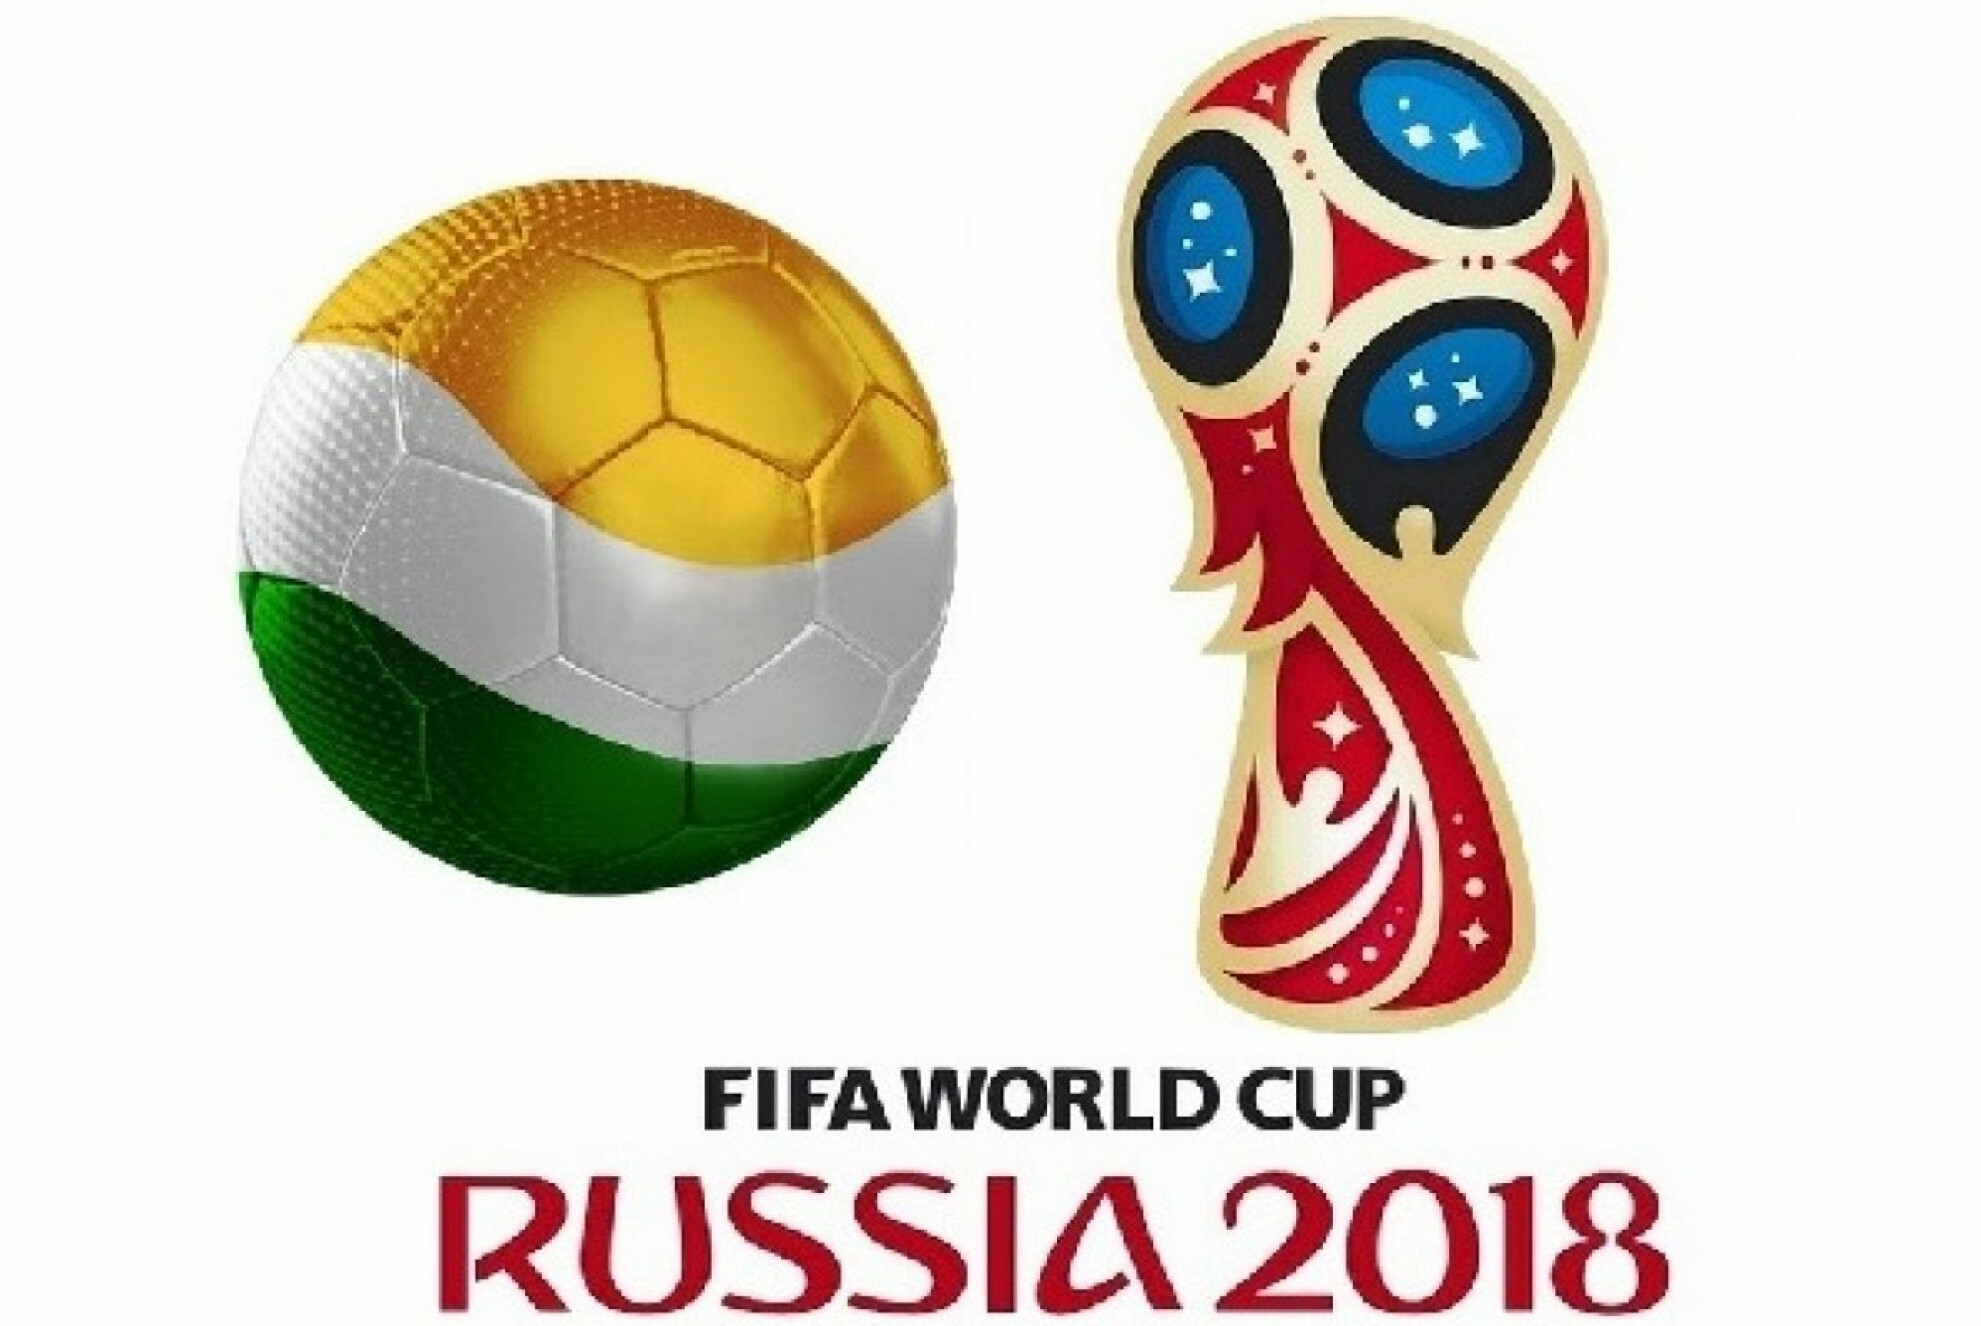 SONY REVEALS: 4.7 Crore Indians Watched the first 48 Hours of World Cup.